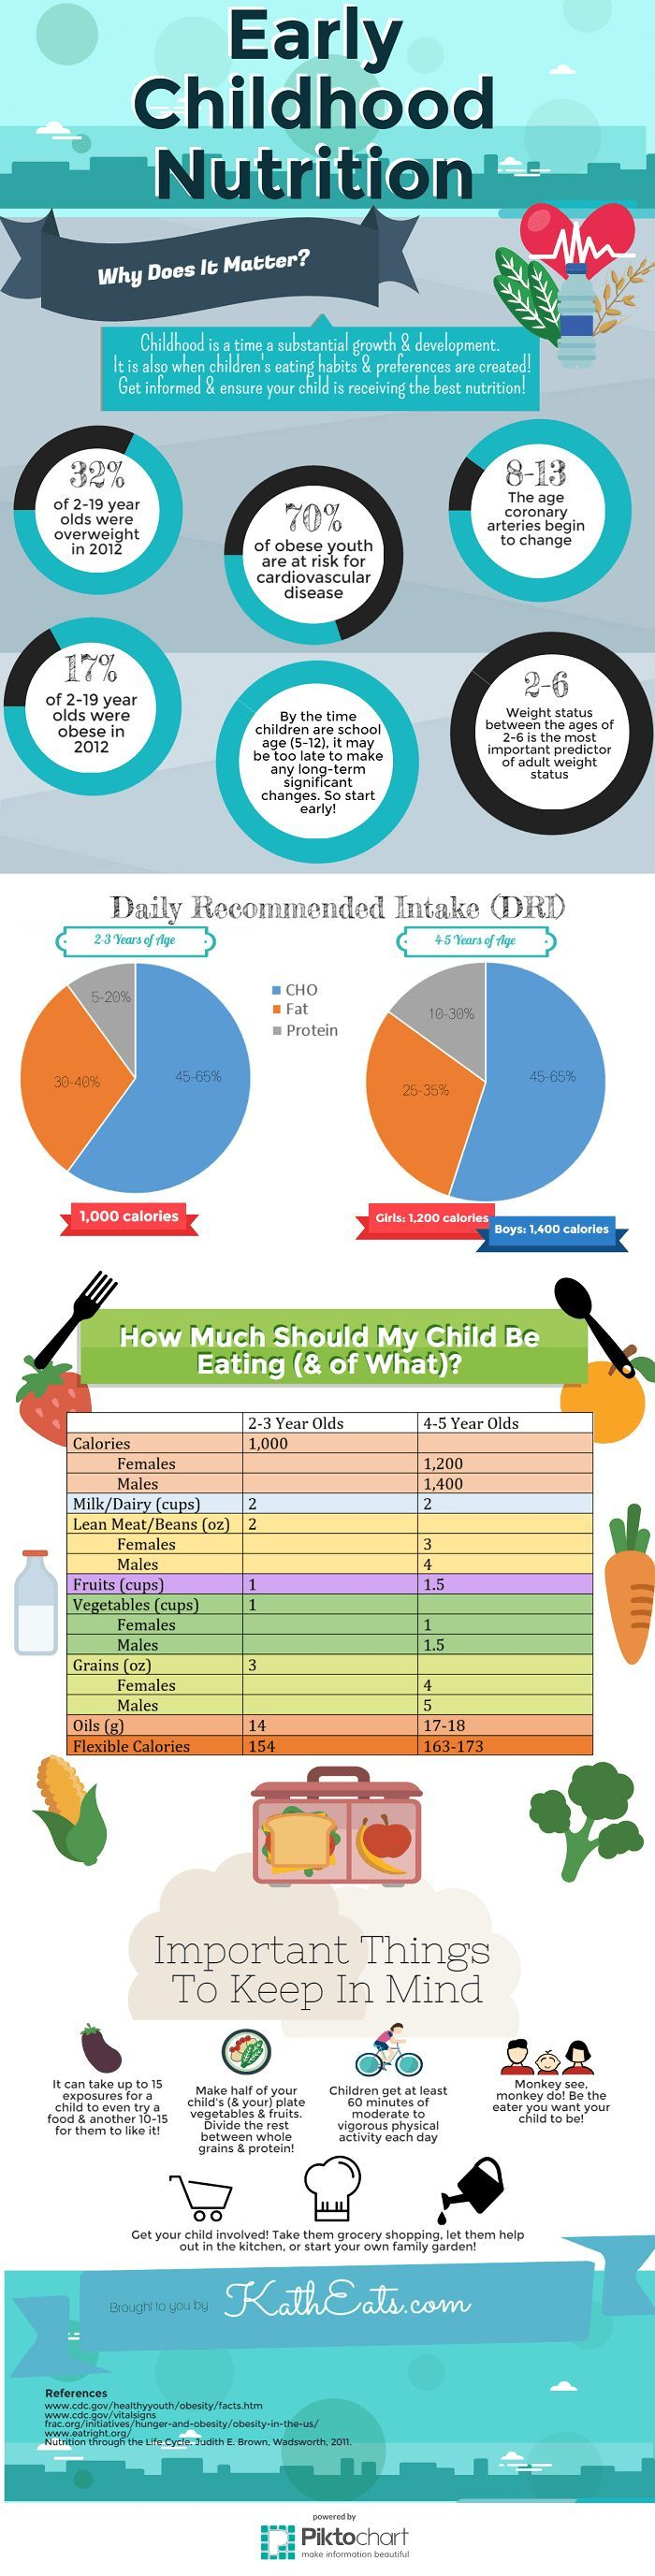 A fact and guide infographic to keep your kiddos healthy!